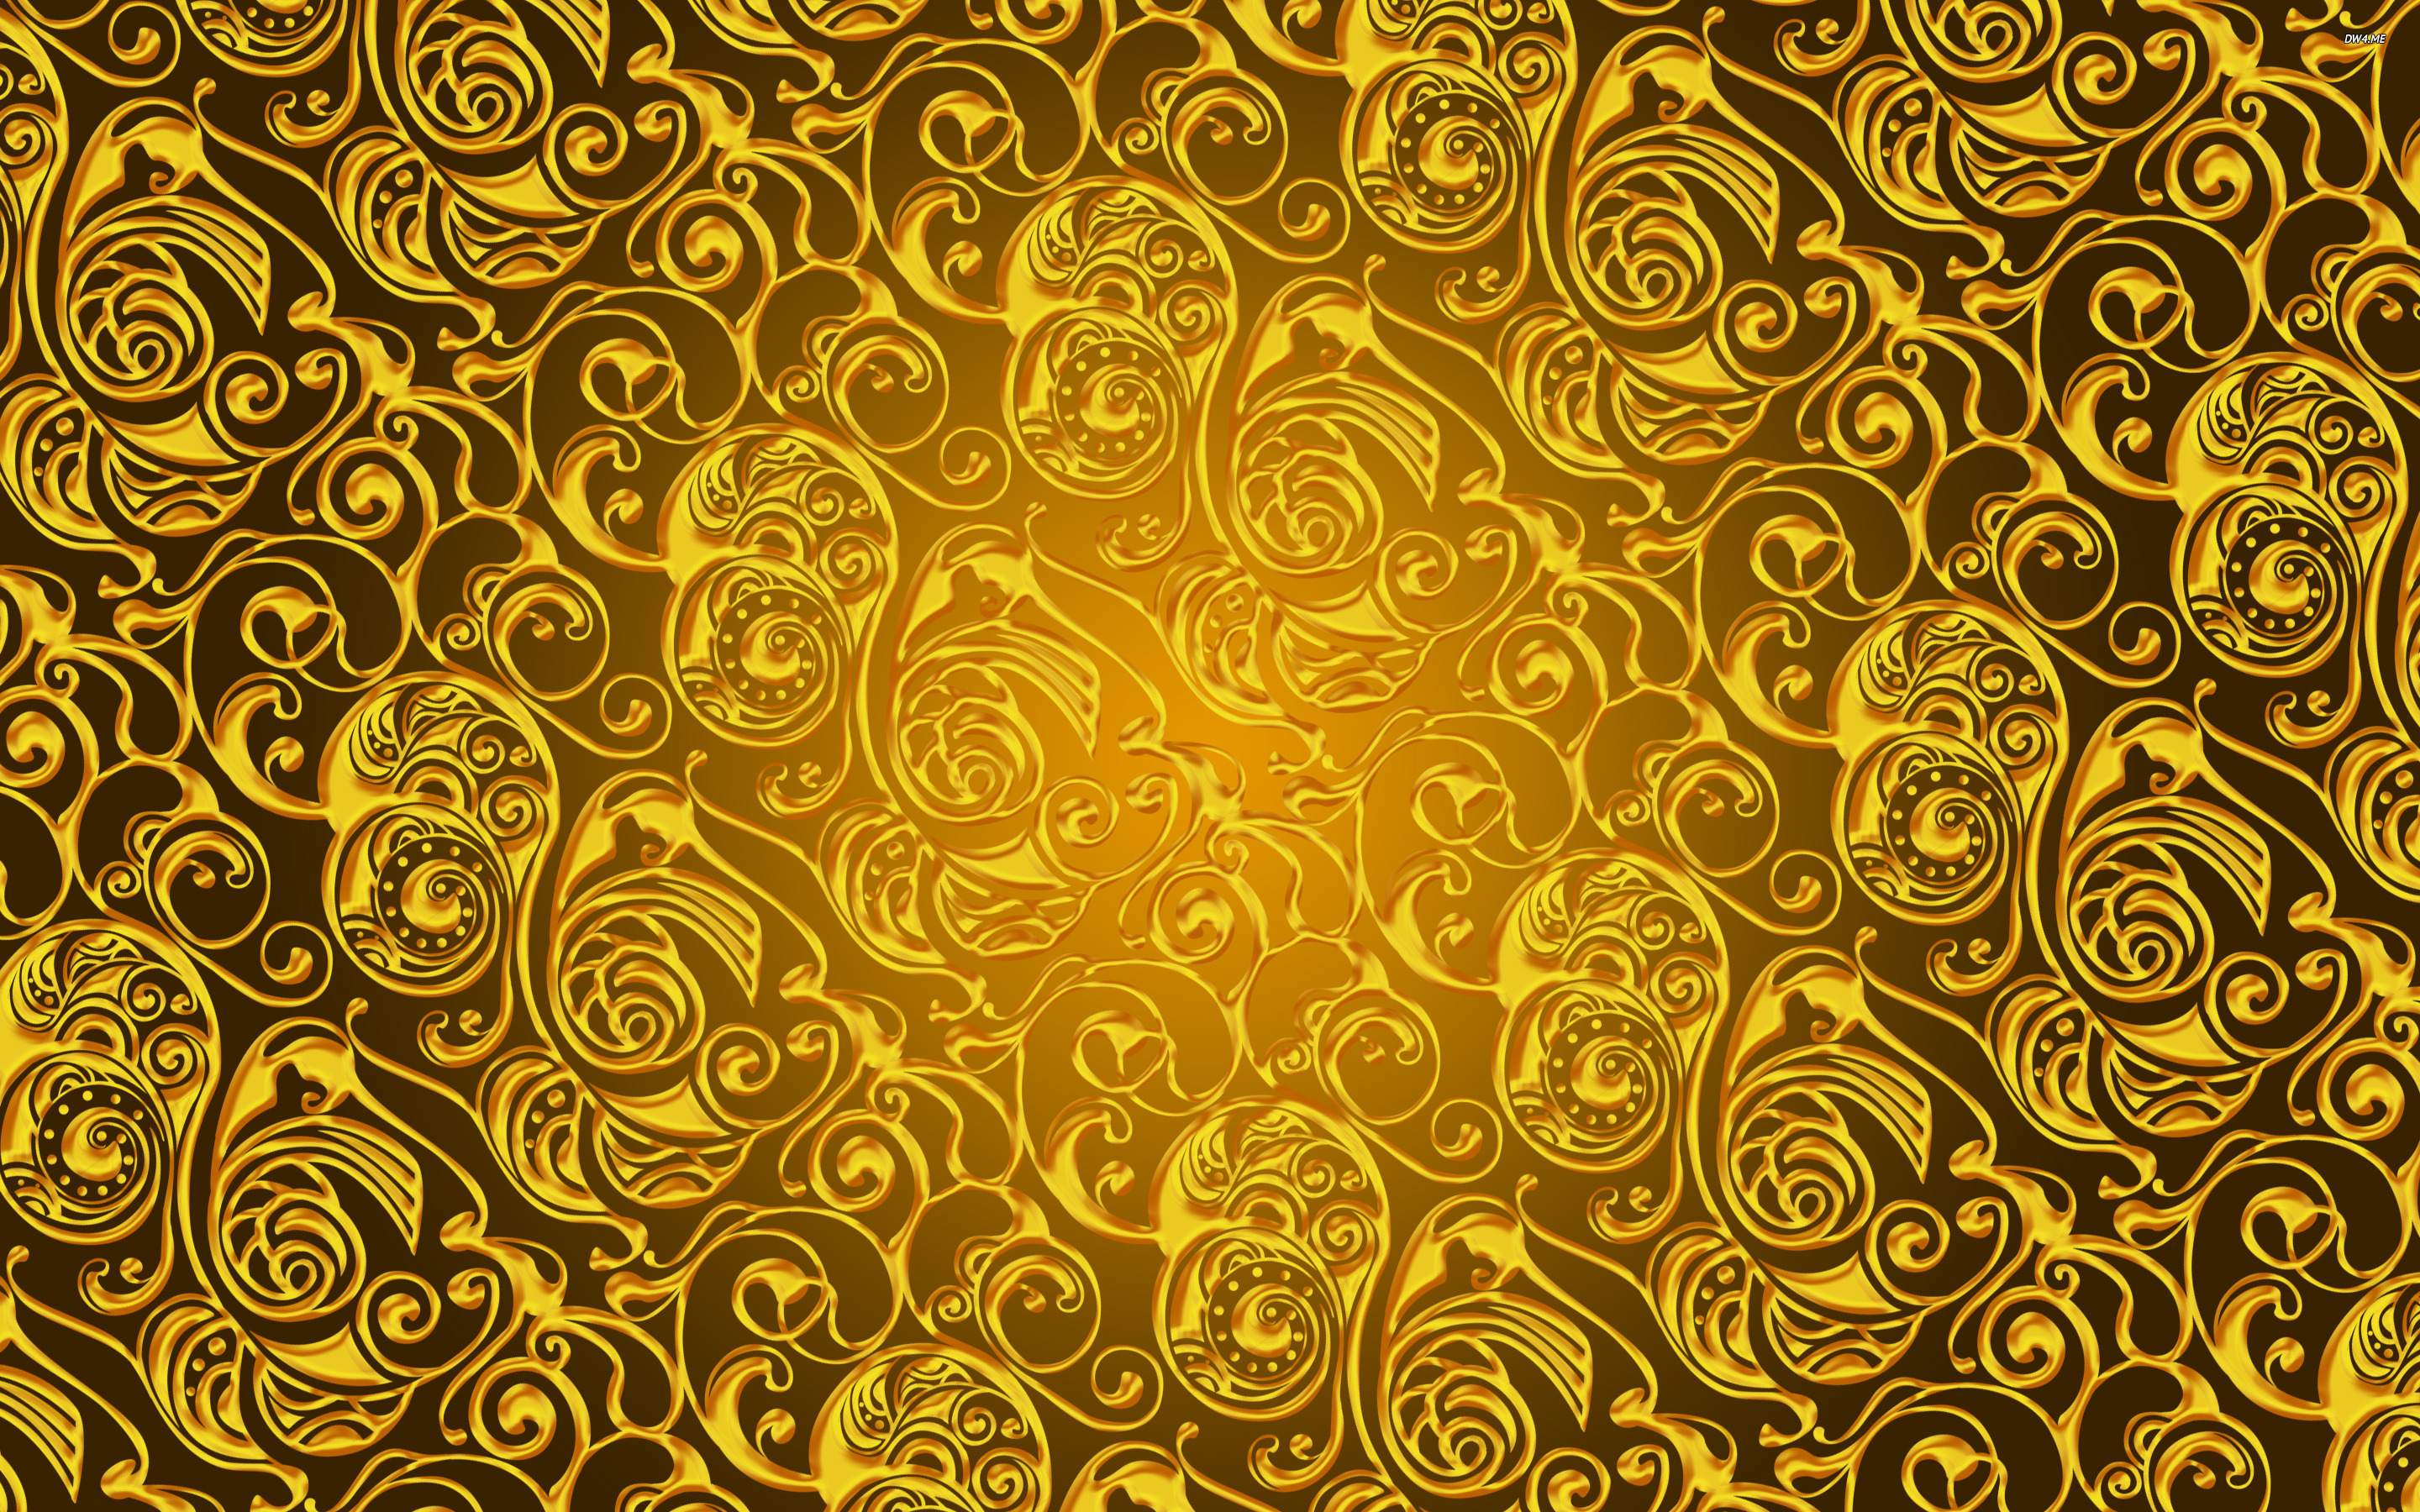 Gold wallpapers pattern hd desktop wallpapers 4k hd for Wallpaper pattern